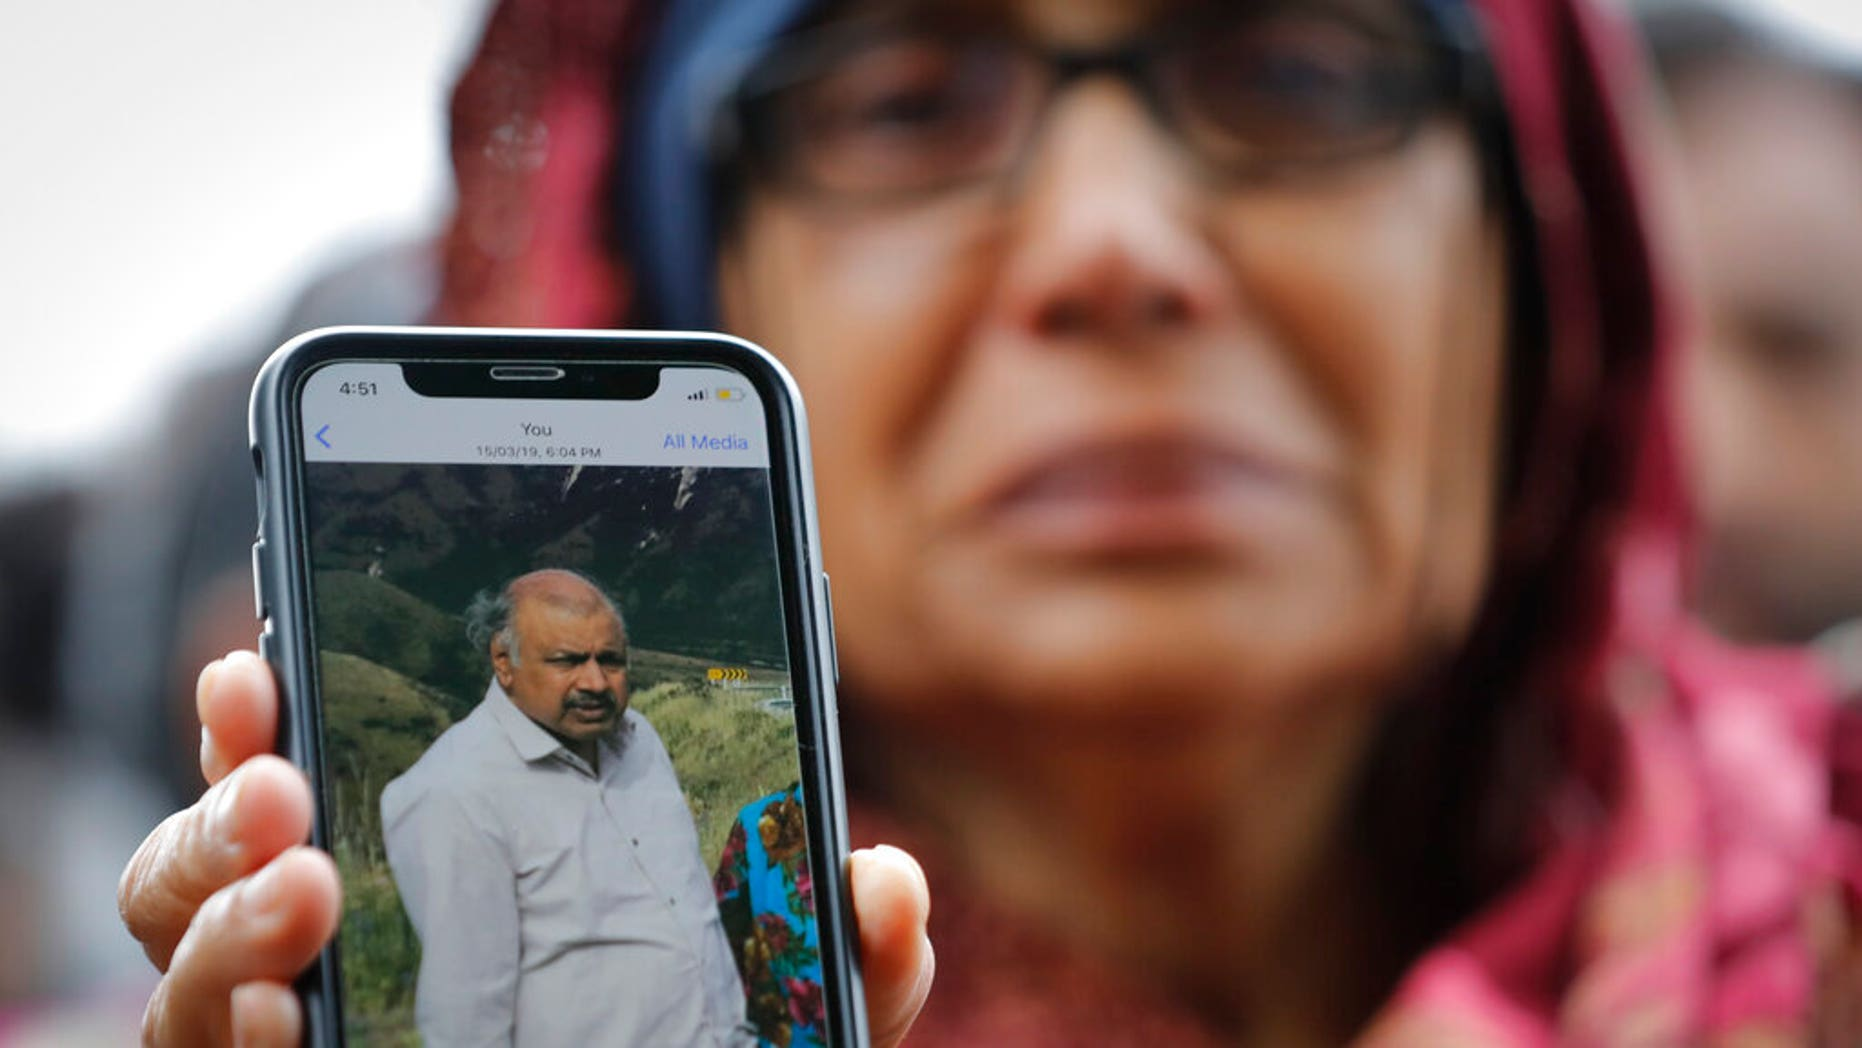 Akhtar Khokhur, 58 ans, montre une photo de son mari disparu, Mehaboobbhai Khokhar, lors d'une interview devant un centre d'information pour les familles ce week-end à Christchurch, en Nouvelle-Zélande. (AP Photo / Vincent Thian)